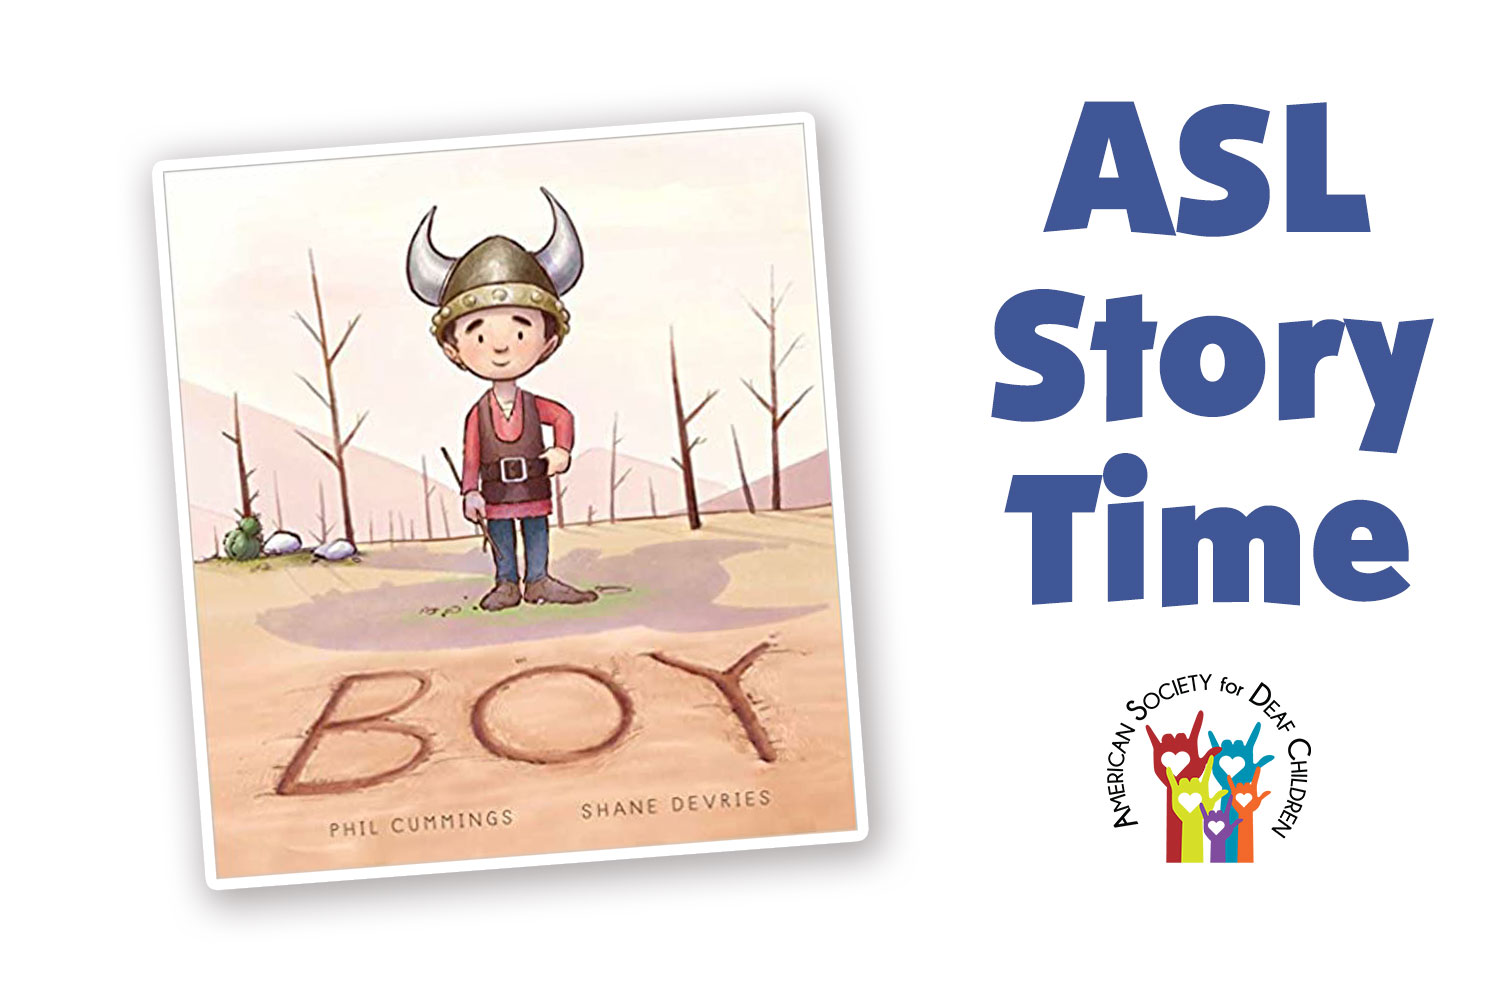 """image shows the cover of the book """"Boy"""" which shows a small boy in a Viking hat standing on sandy ground"""